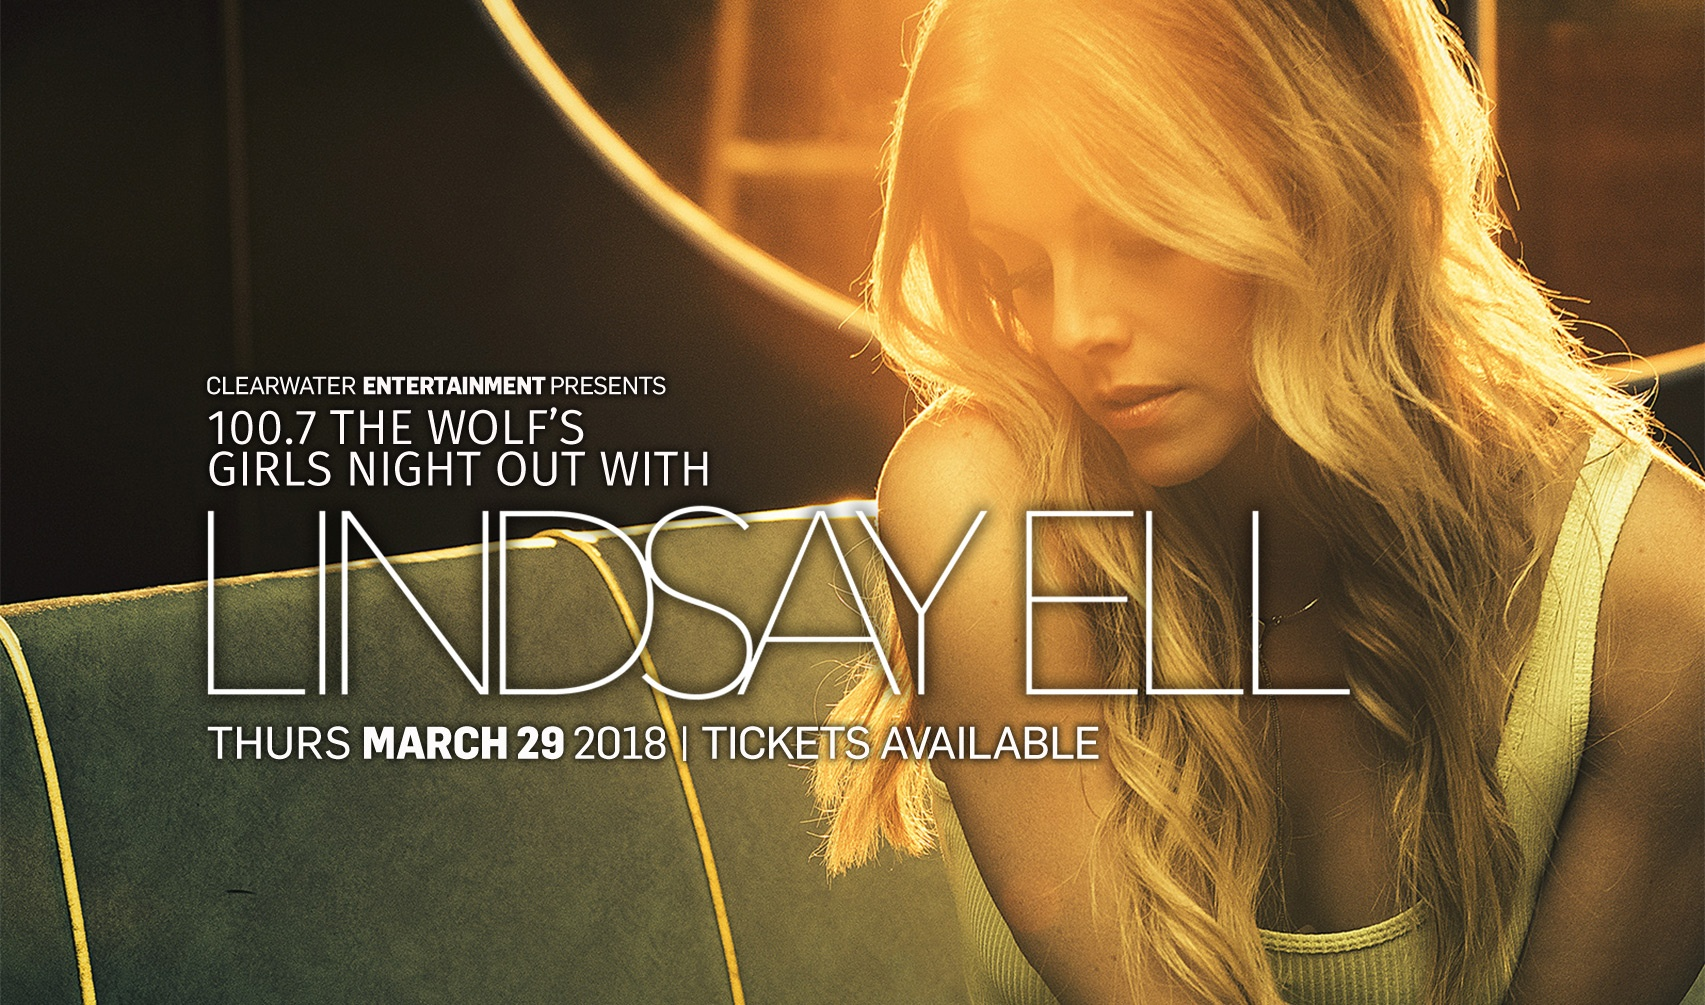 Girls Night Out w/ Lindsay Ell - March 29th